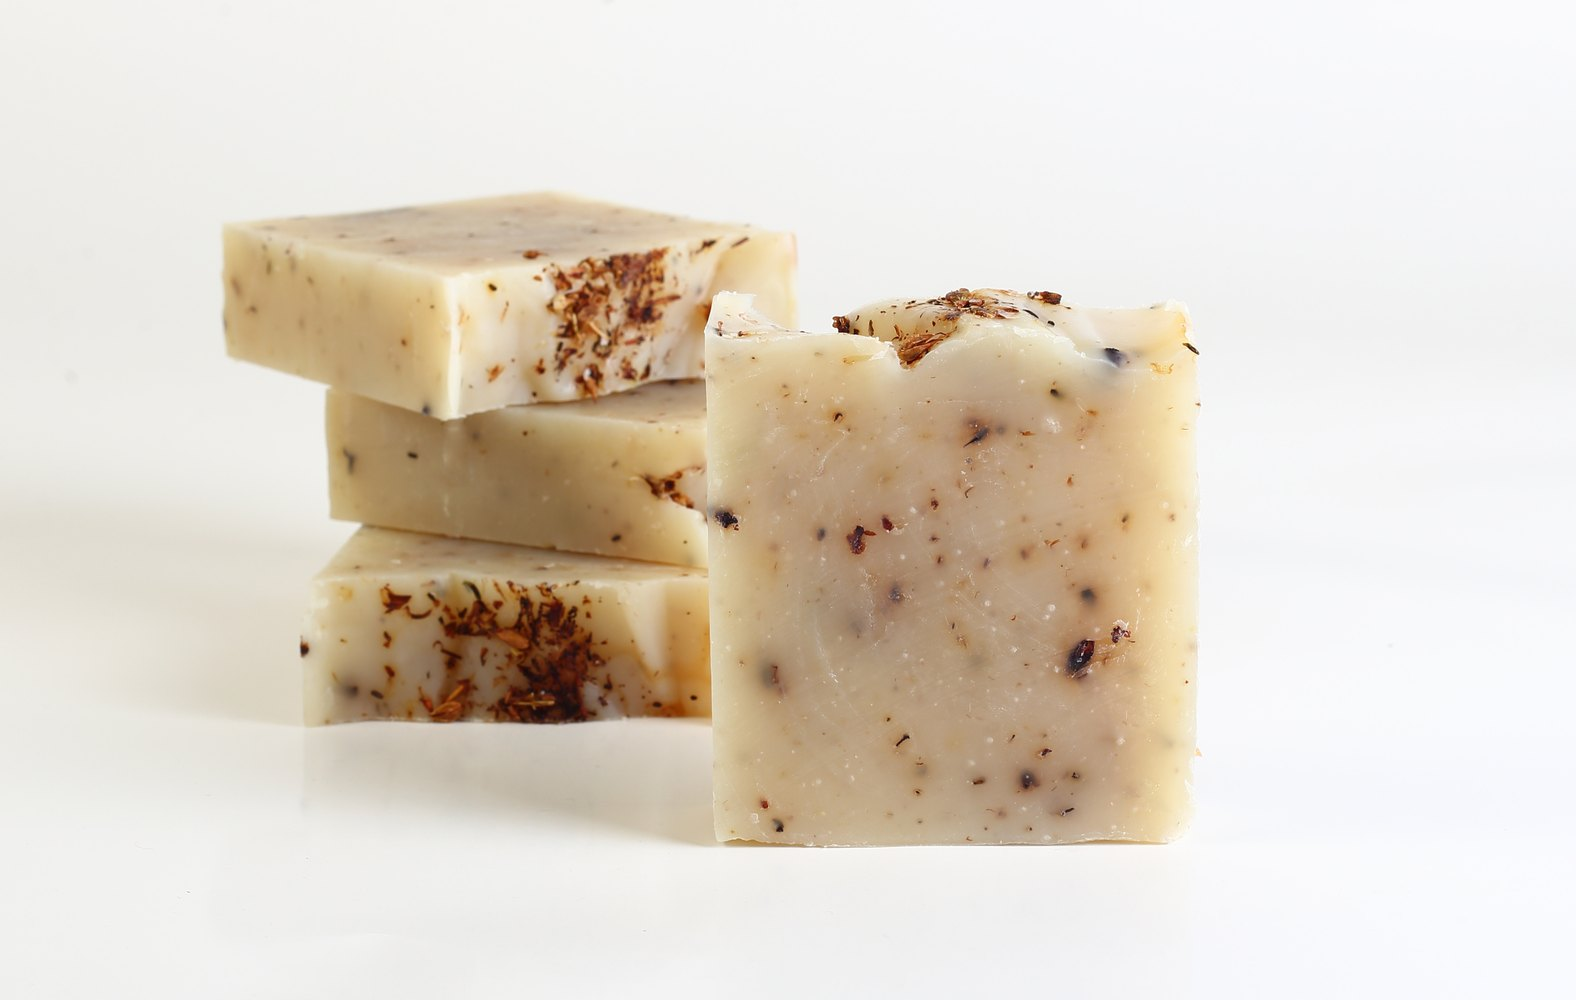 st john's wort soap wholesale